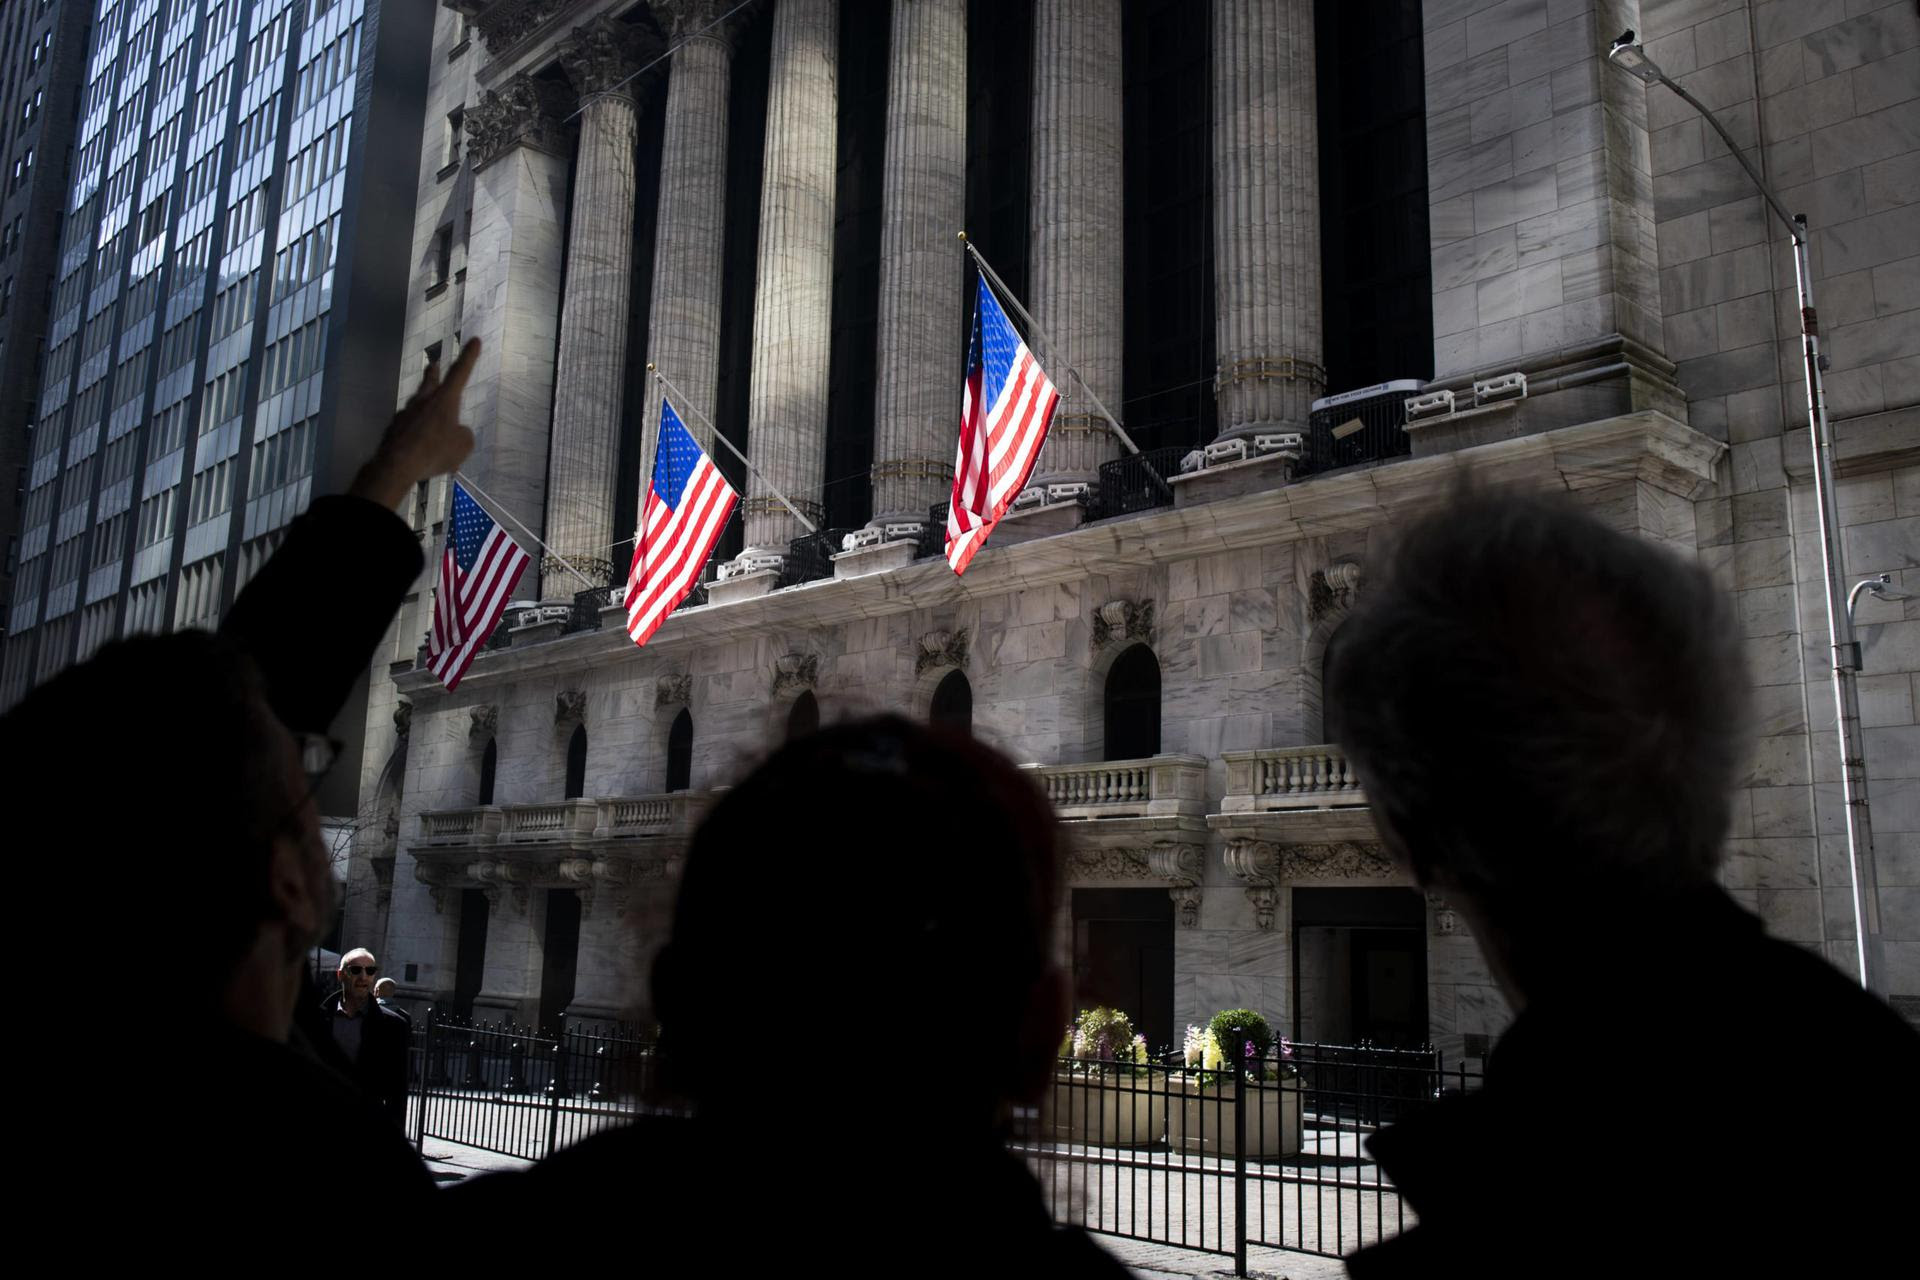 People pointing at Wall Street buildings